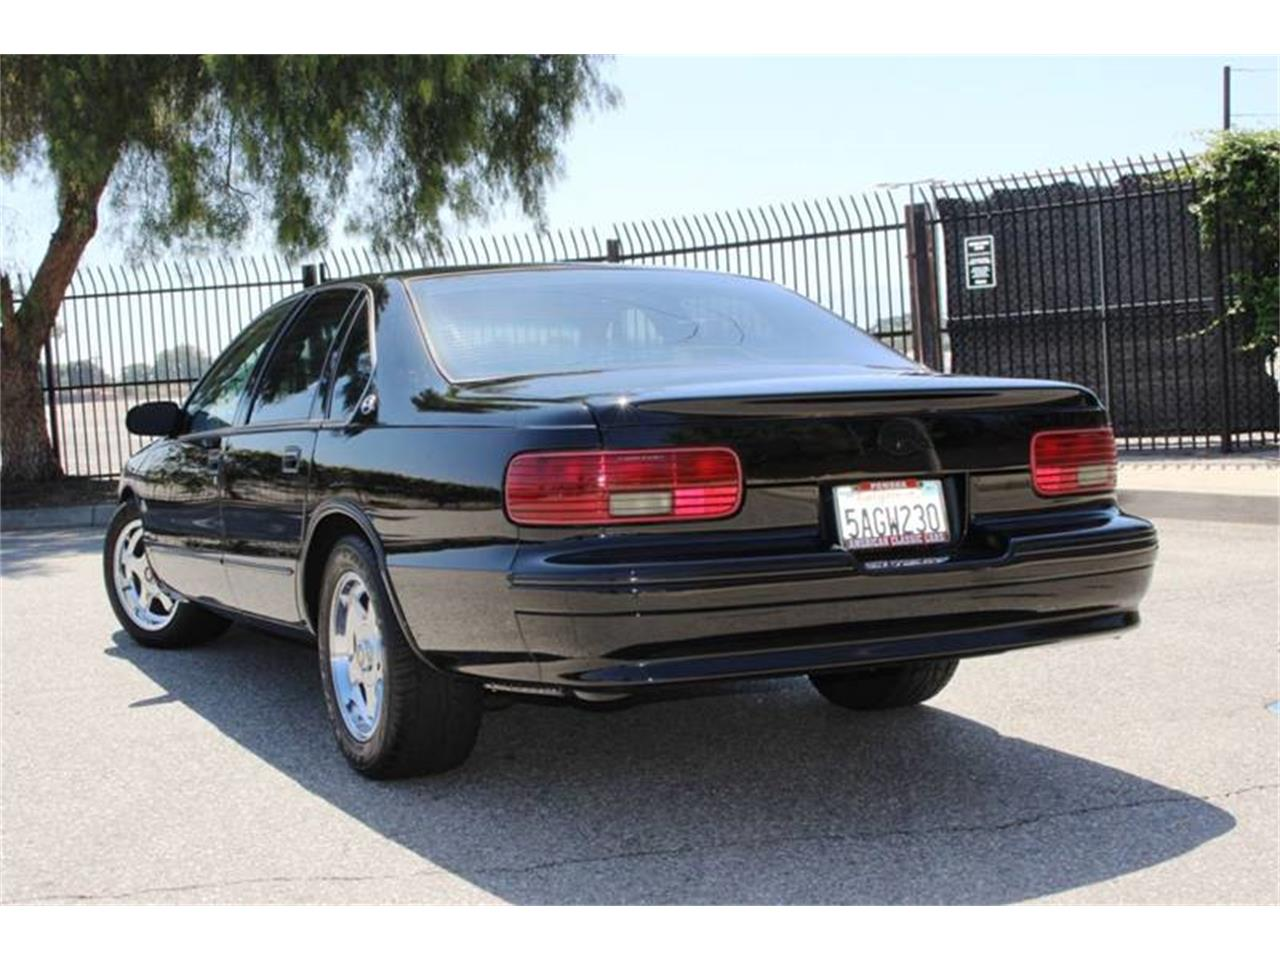 1995 Chevrolet Impala for sale in La Verne, CA – photo 9